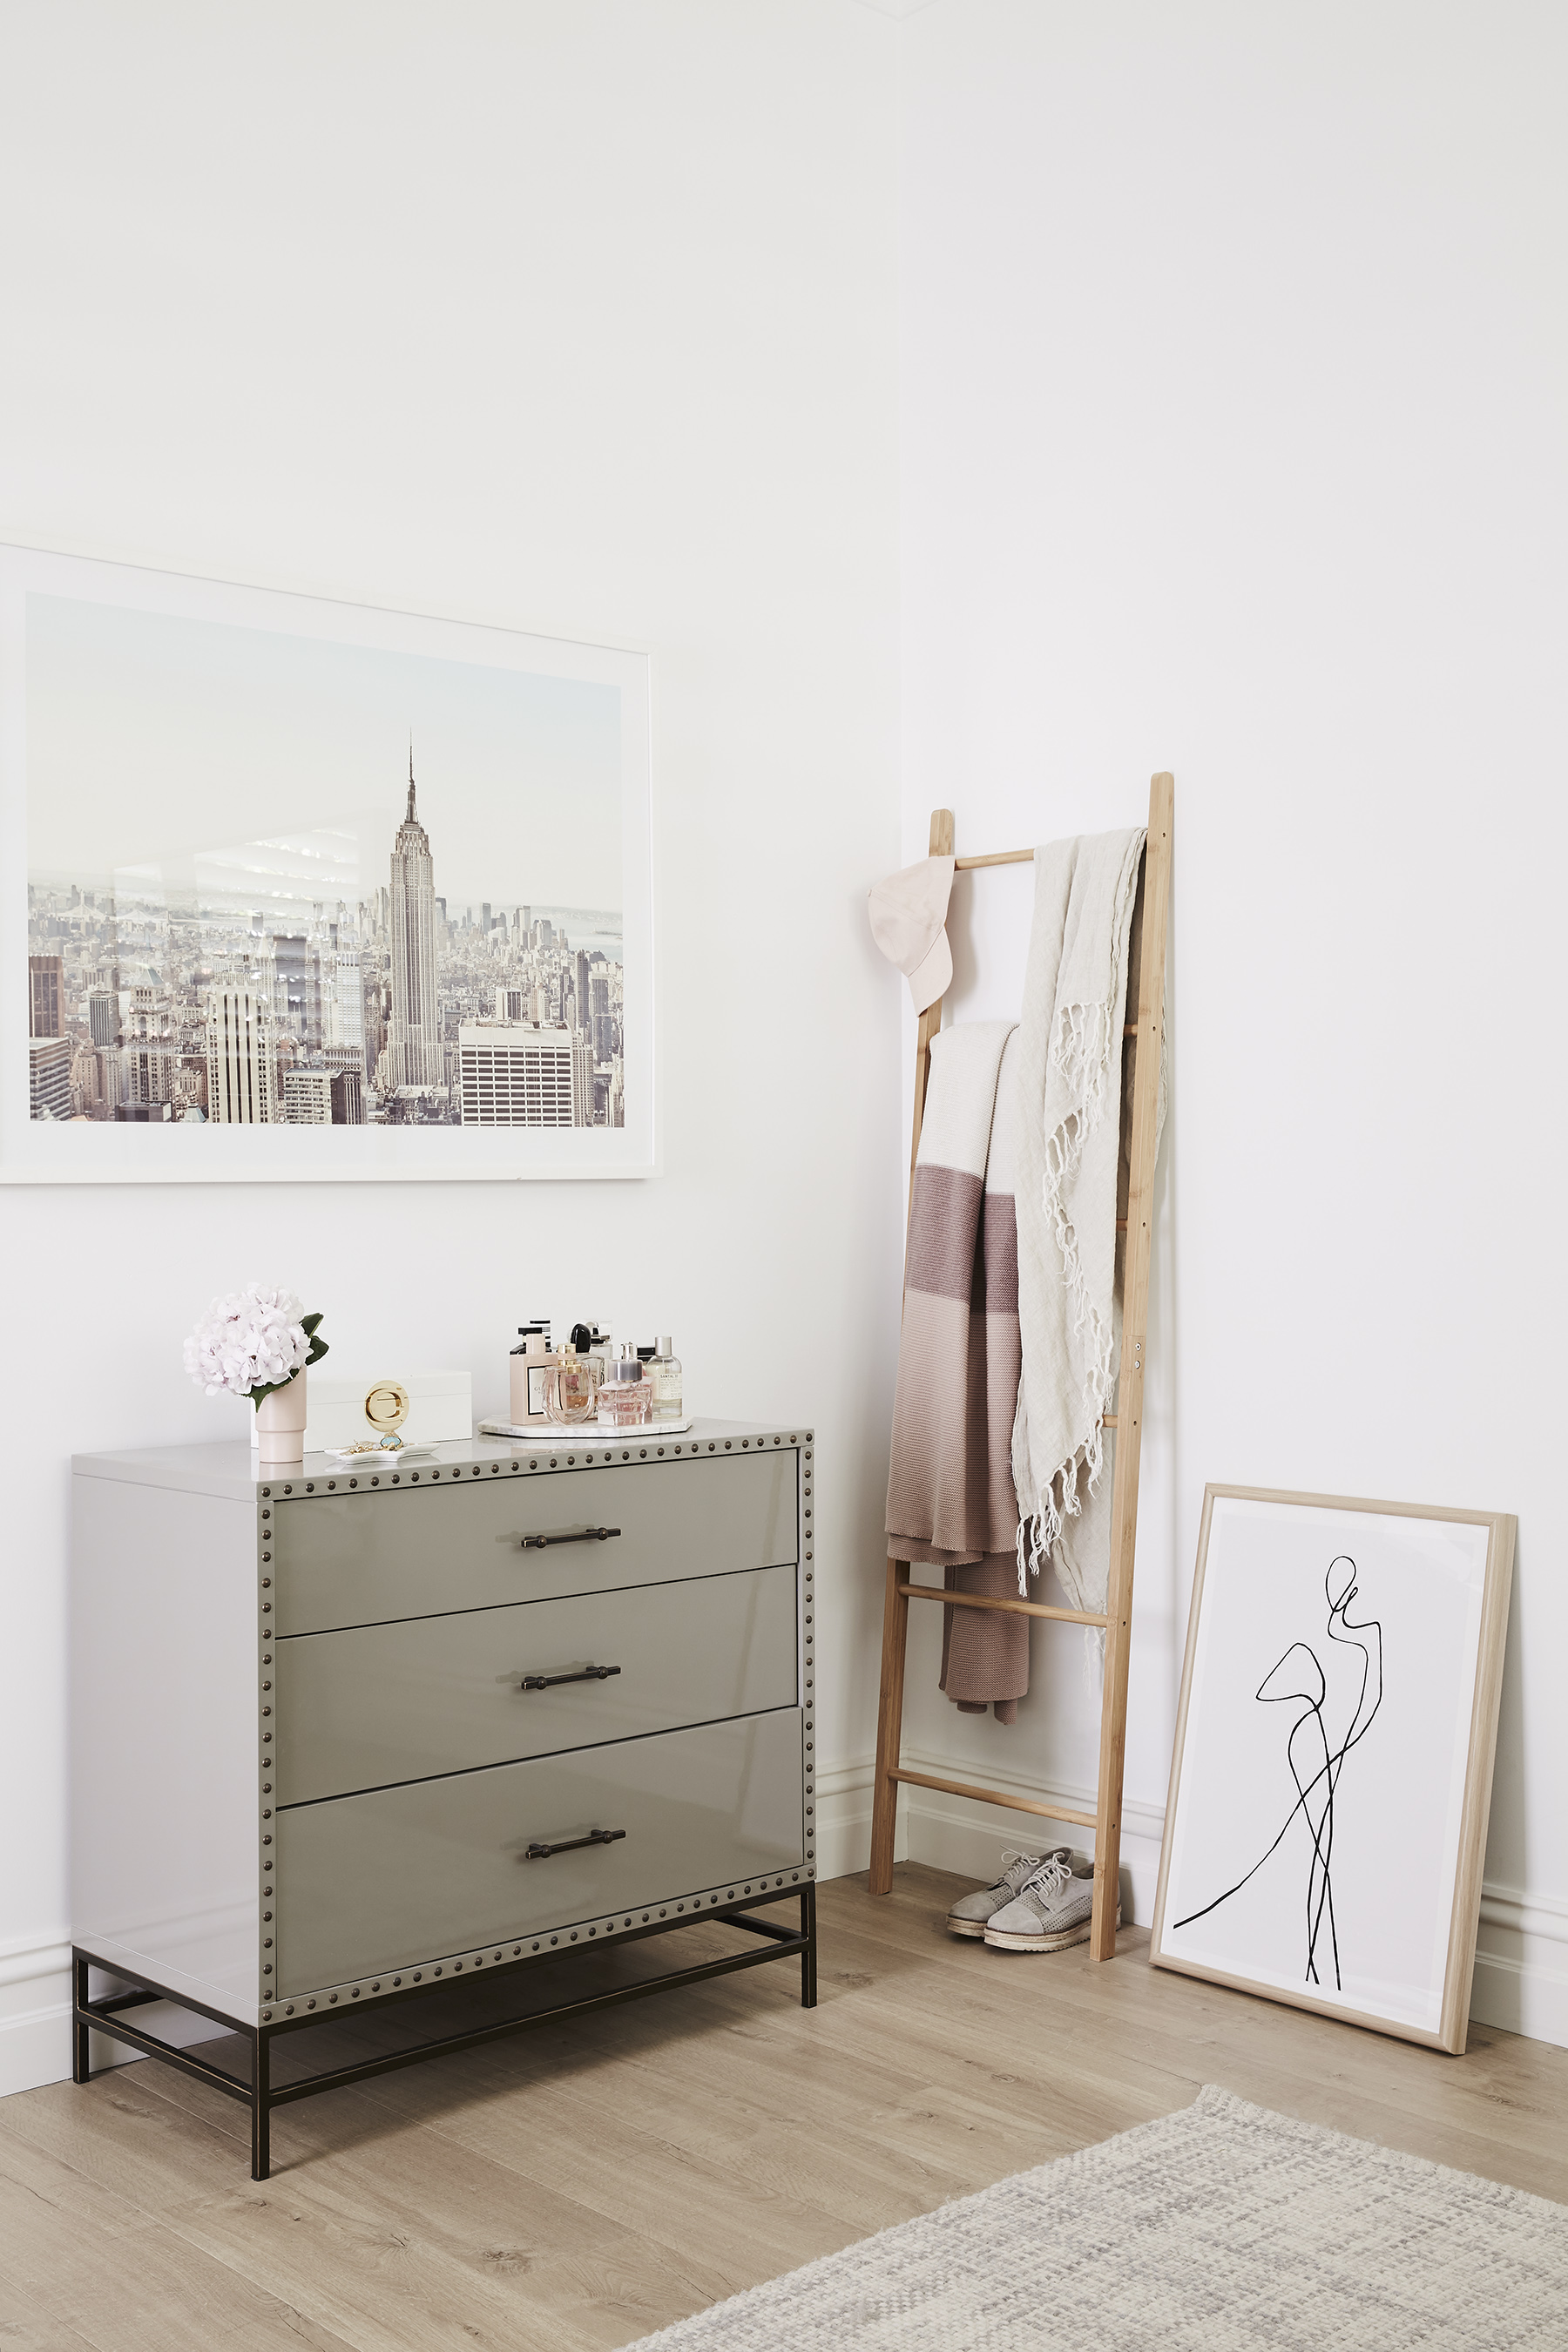 Photography   Annette O'Brien  /  Photoshoot styling   Alana Langan  /  Interior design   Courtney Leslie